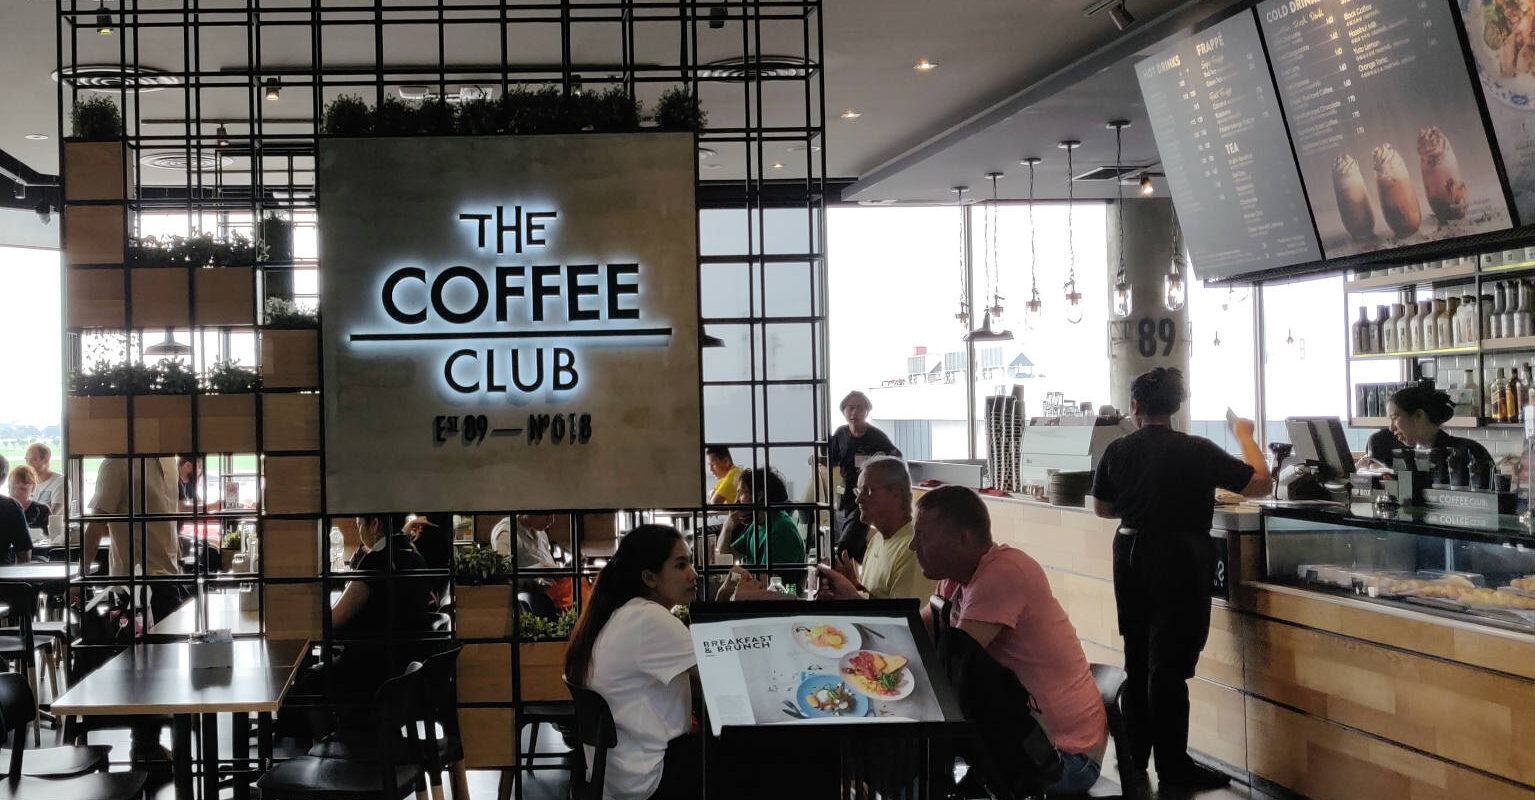 The Coffee Club DMK_1536x1000